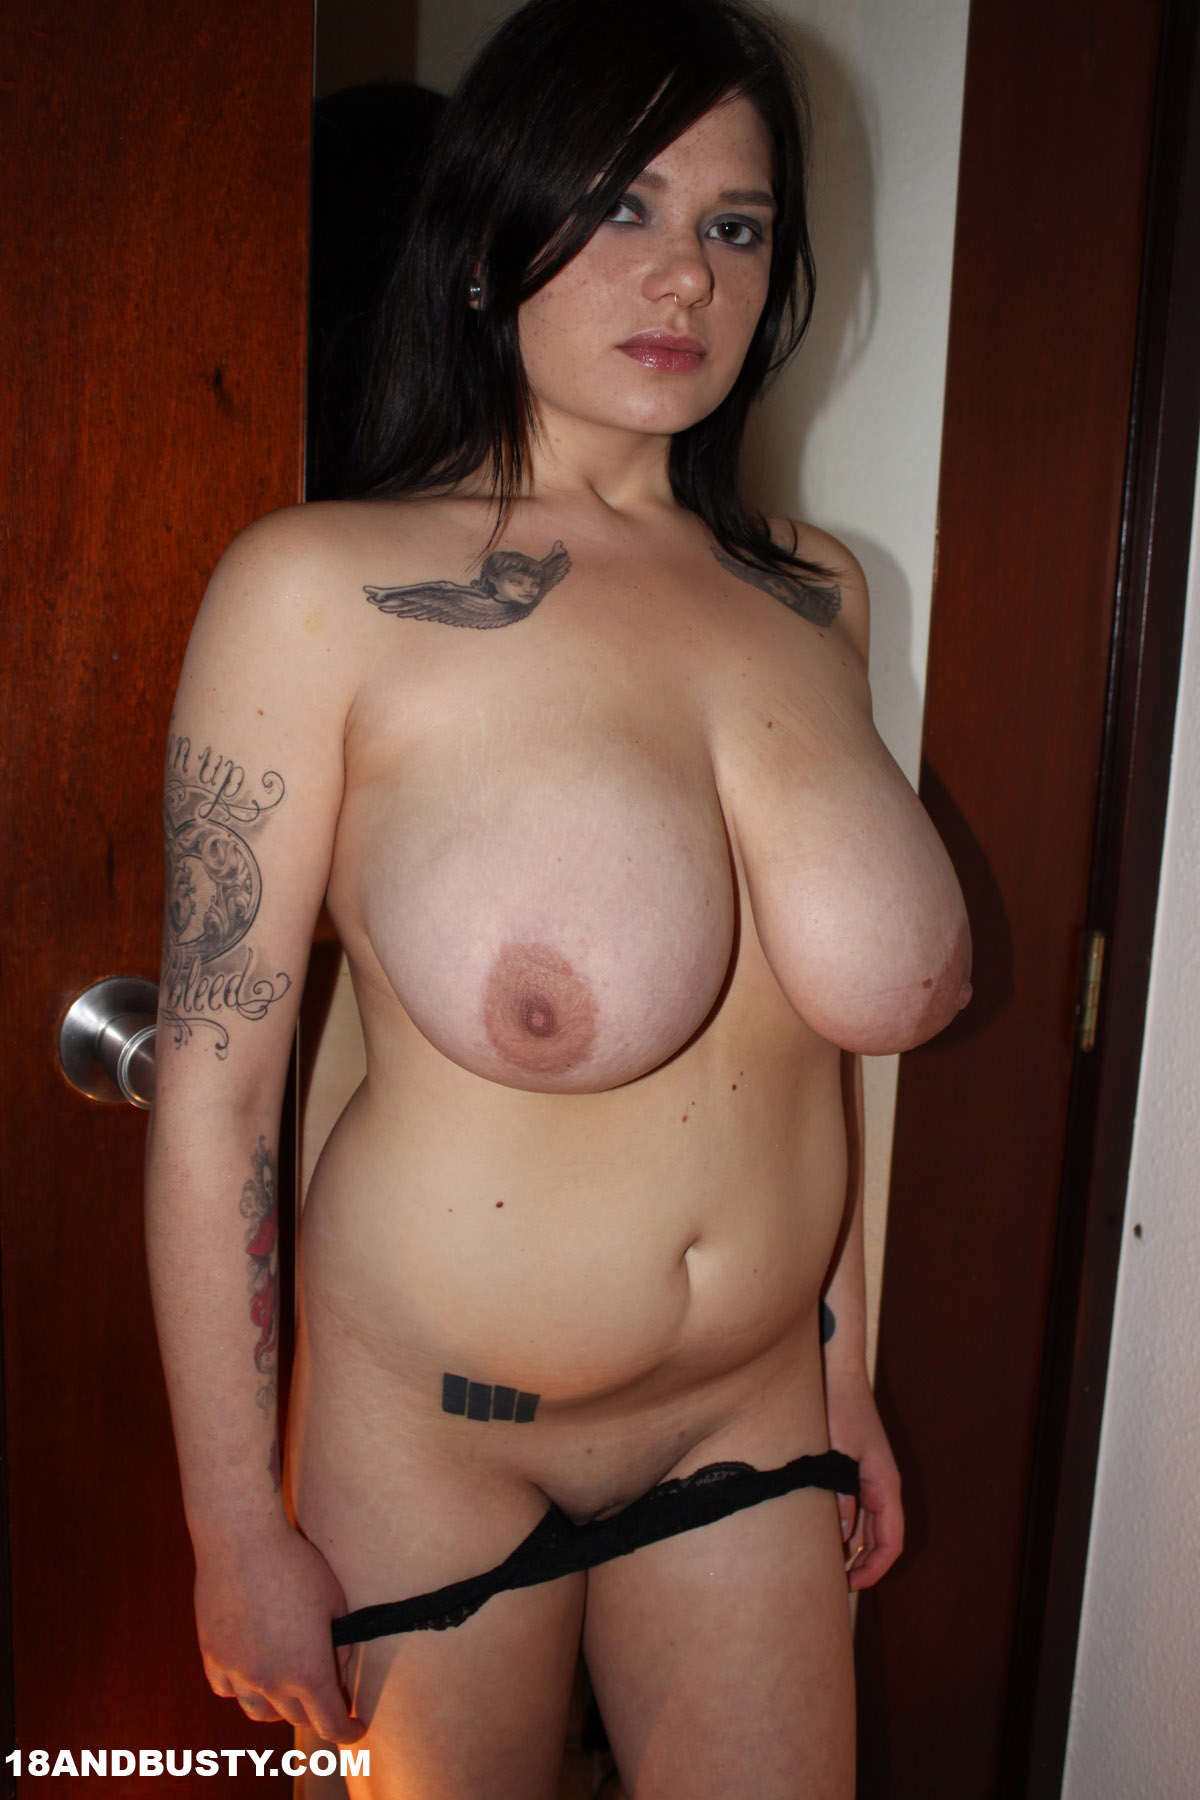 young busty female adult film stars naked